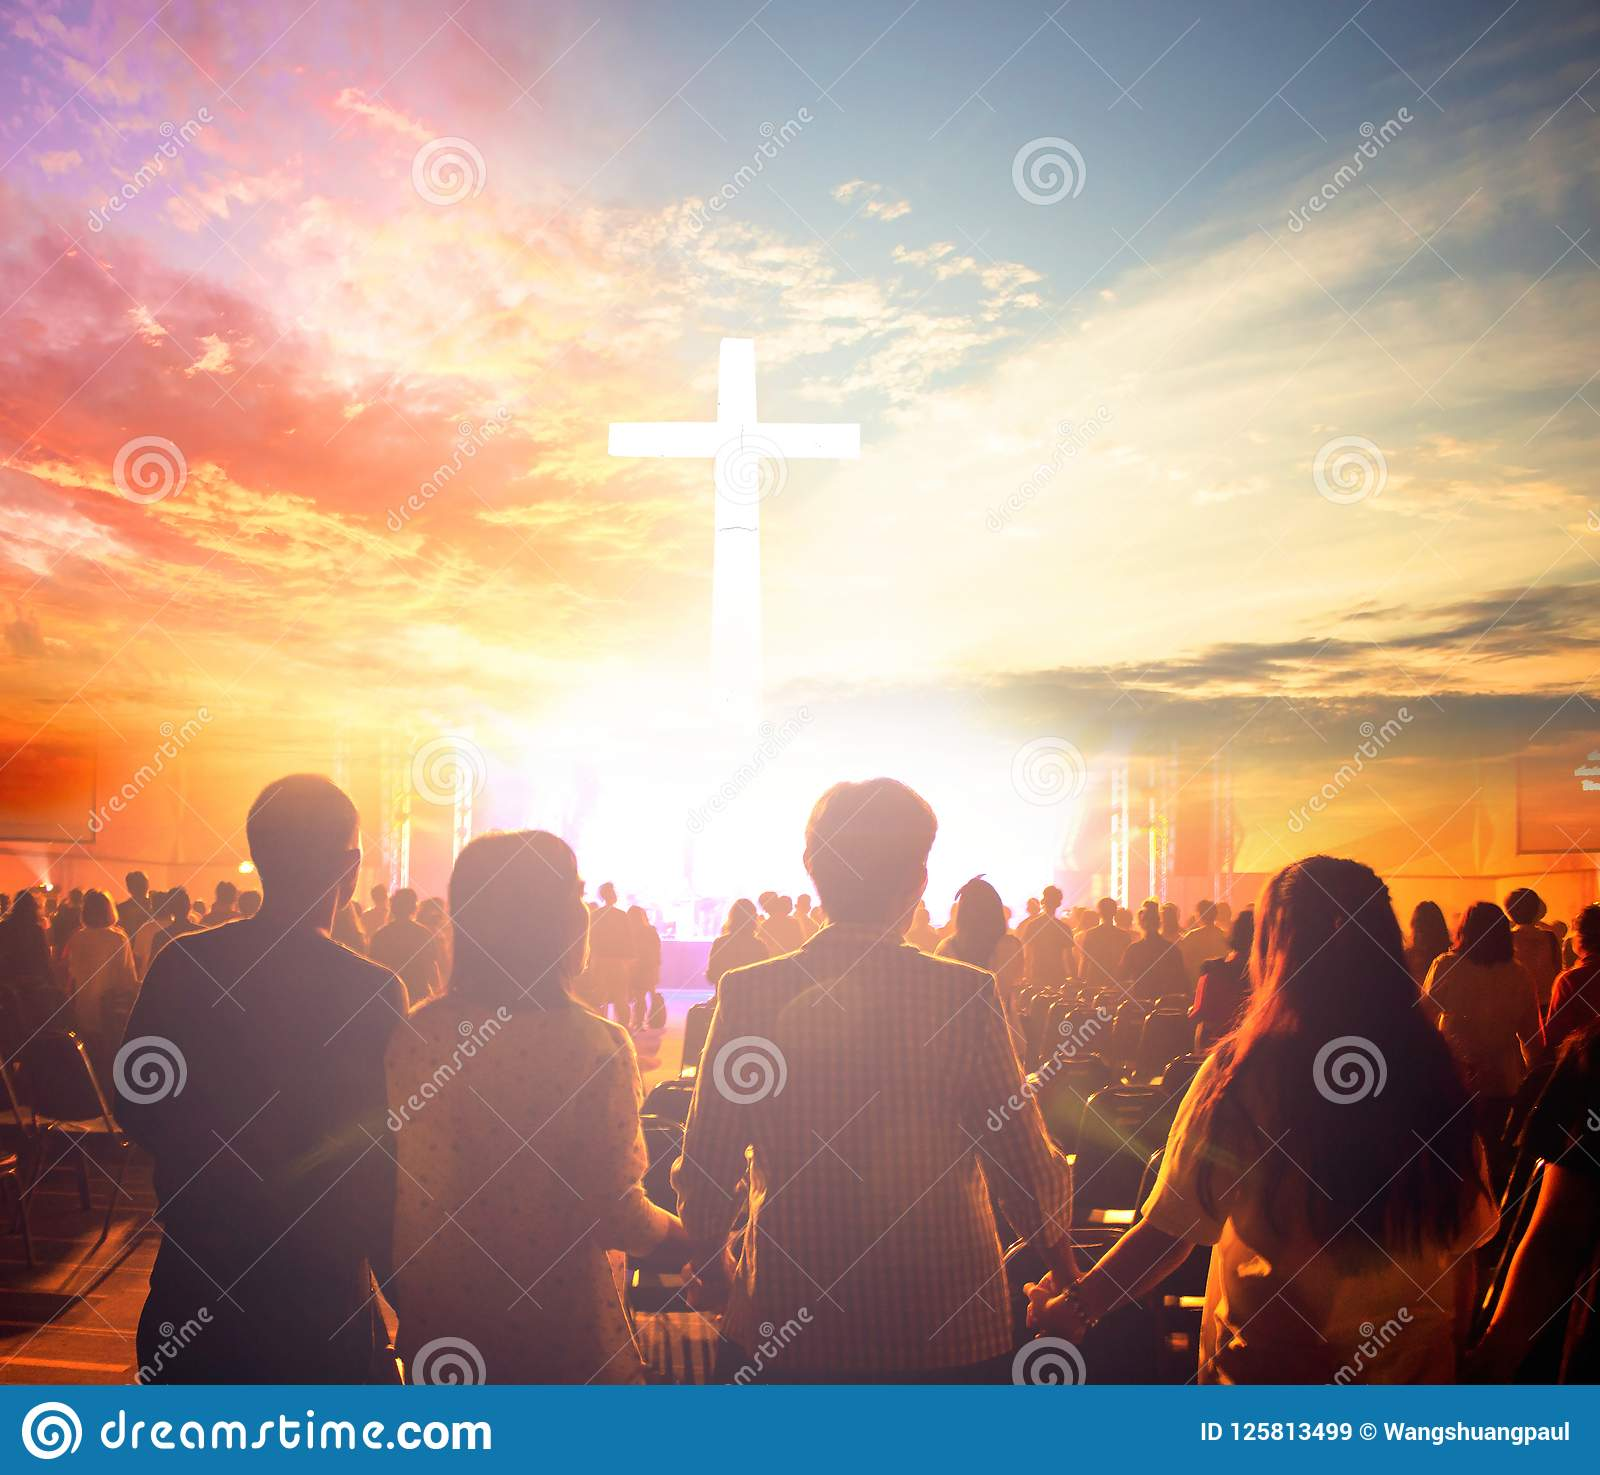 Worship Concept Silhouette People Looking For The Cross On Sunrise Background Editorial Stock Image Image Of Believe Cross 125813499